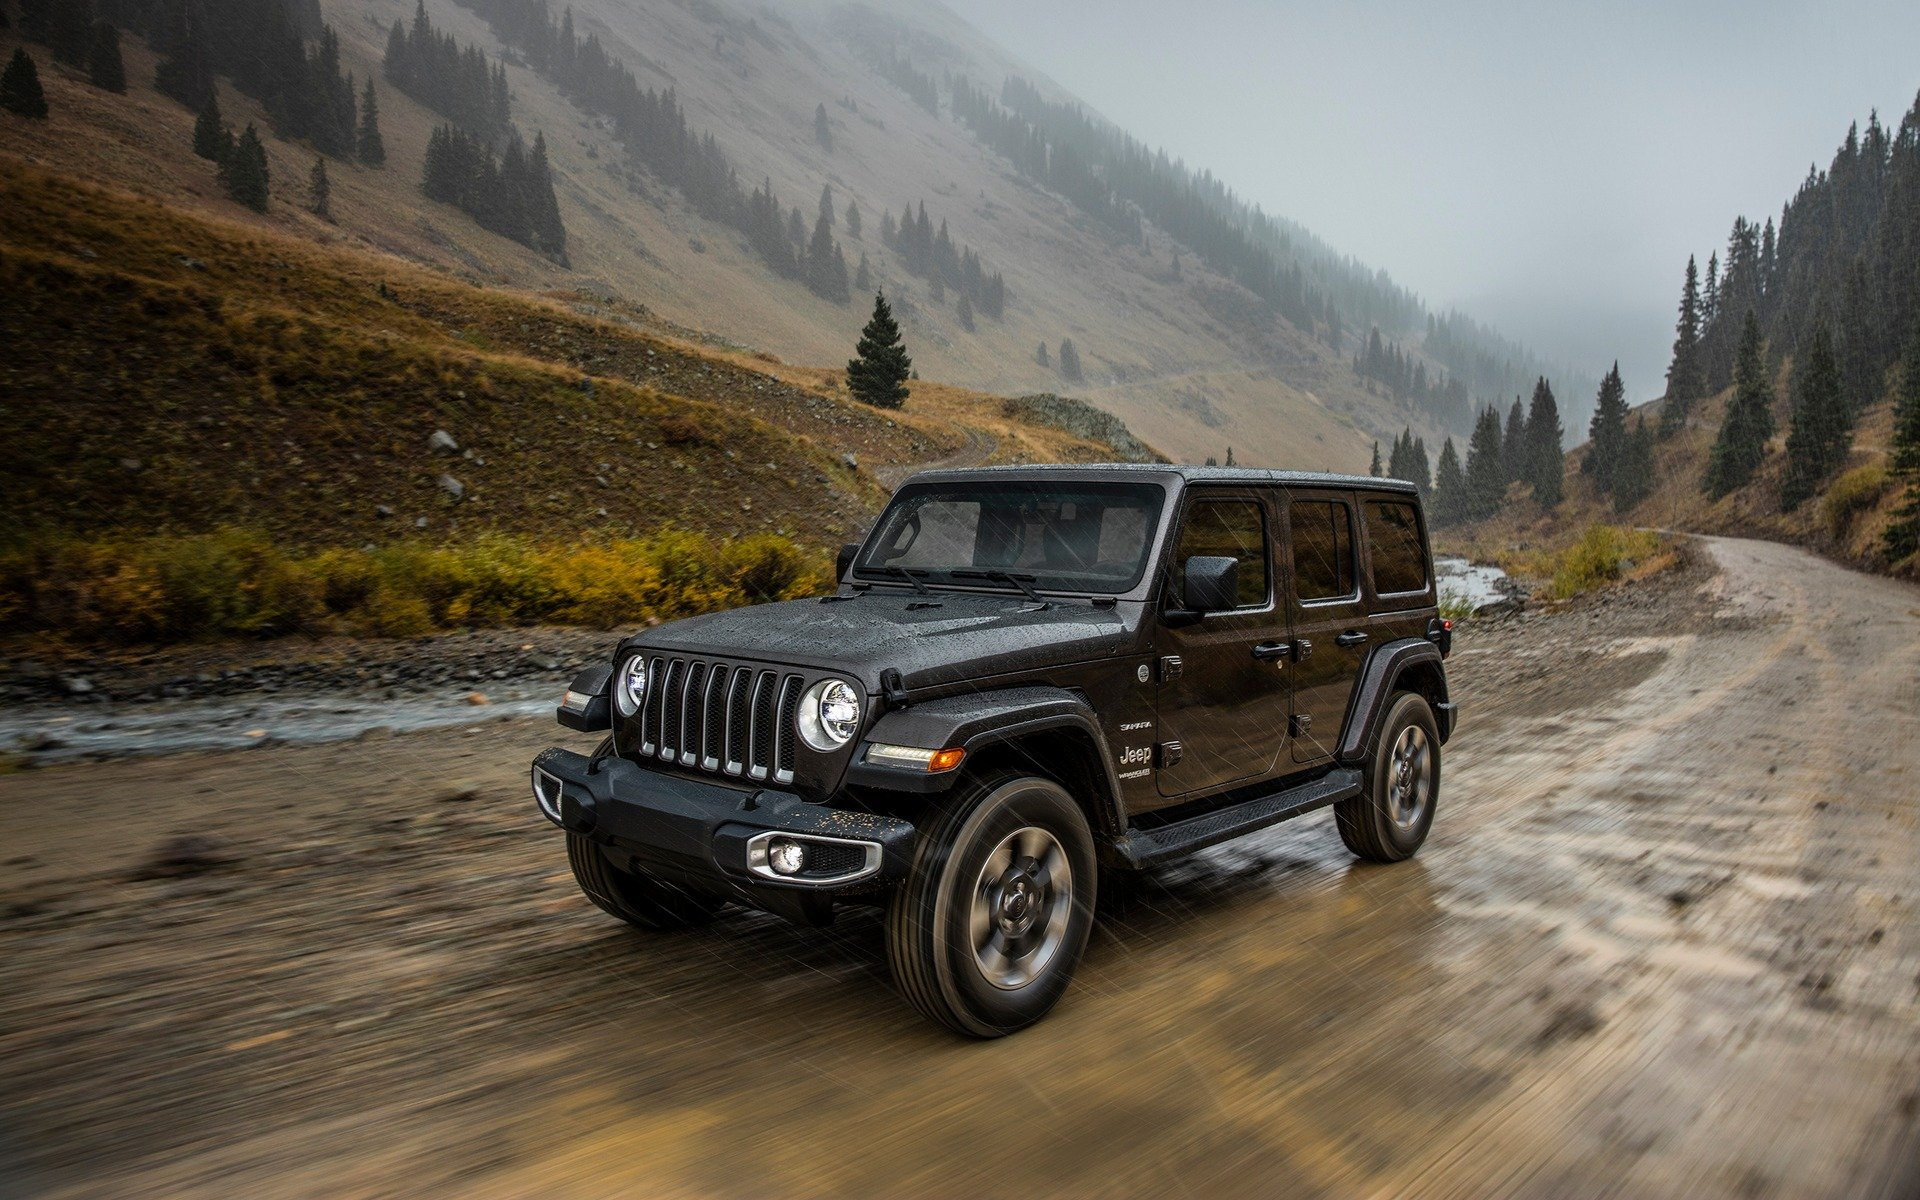 Jeep Wrangler Best-selling SUVs